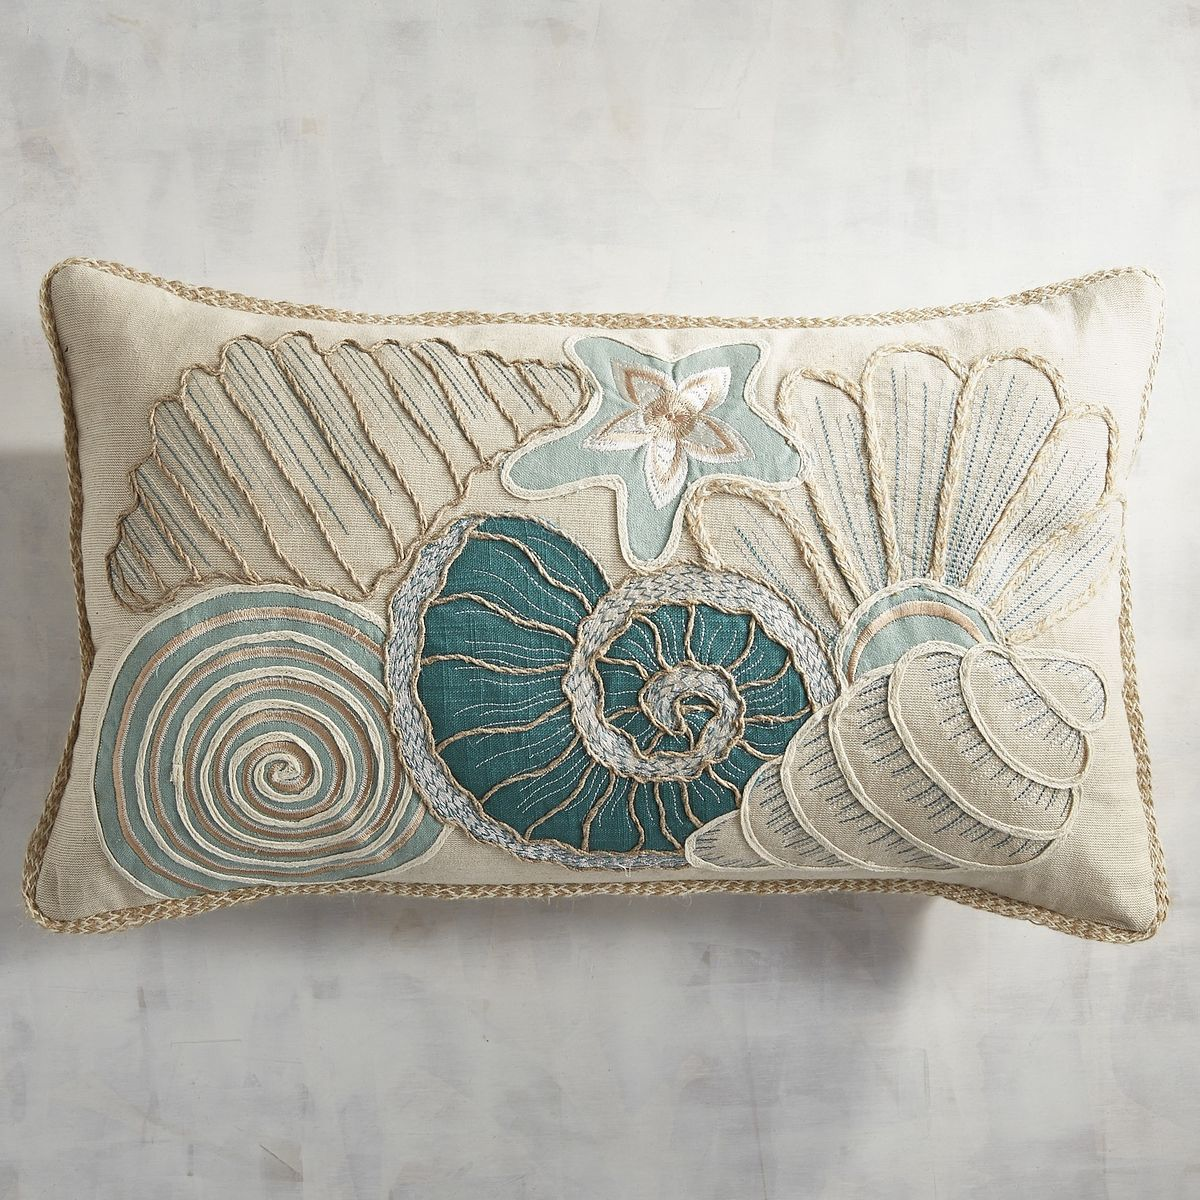 shipping coastal today in product free indoor house sea modern inch home tranquil overstock throw pillows garden turtles blue cotton pillow cover artisan beach